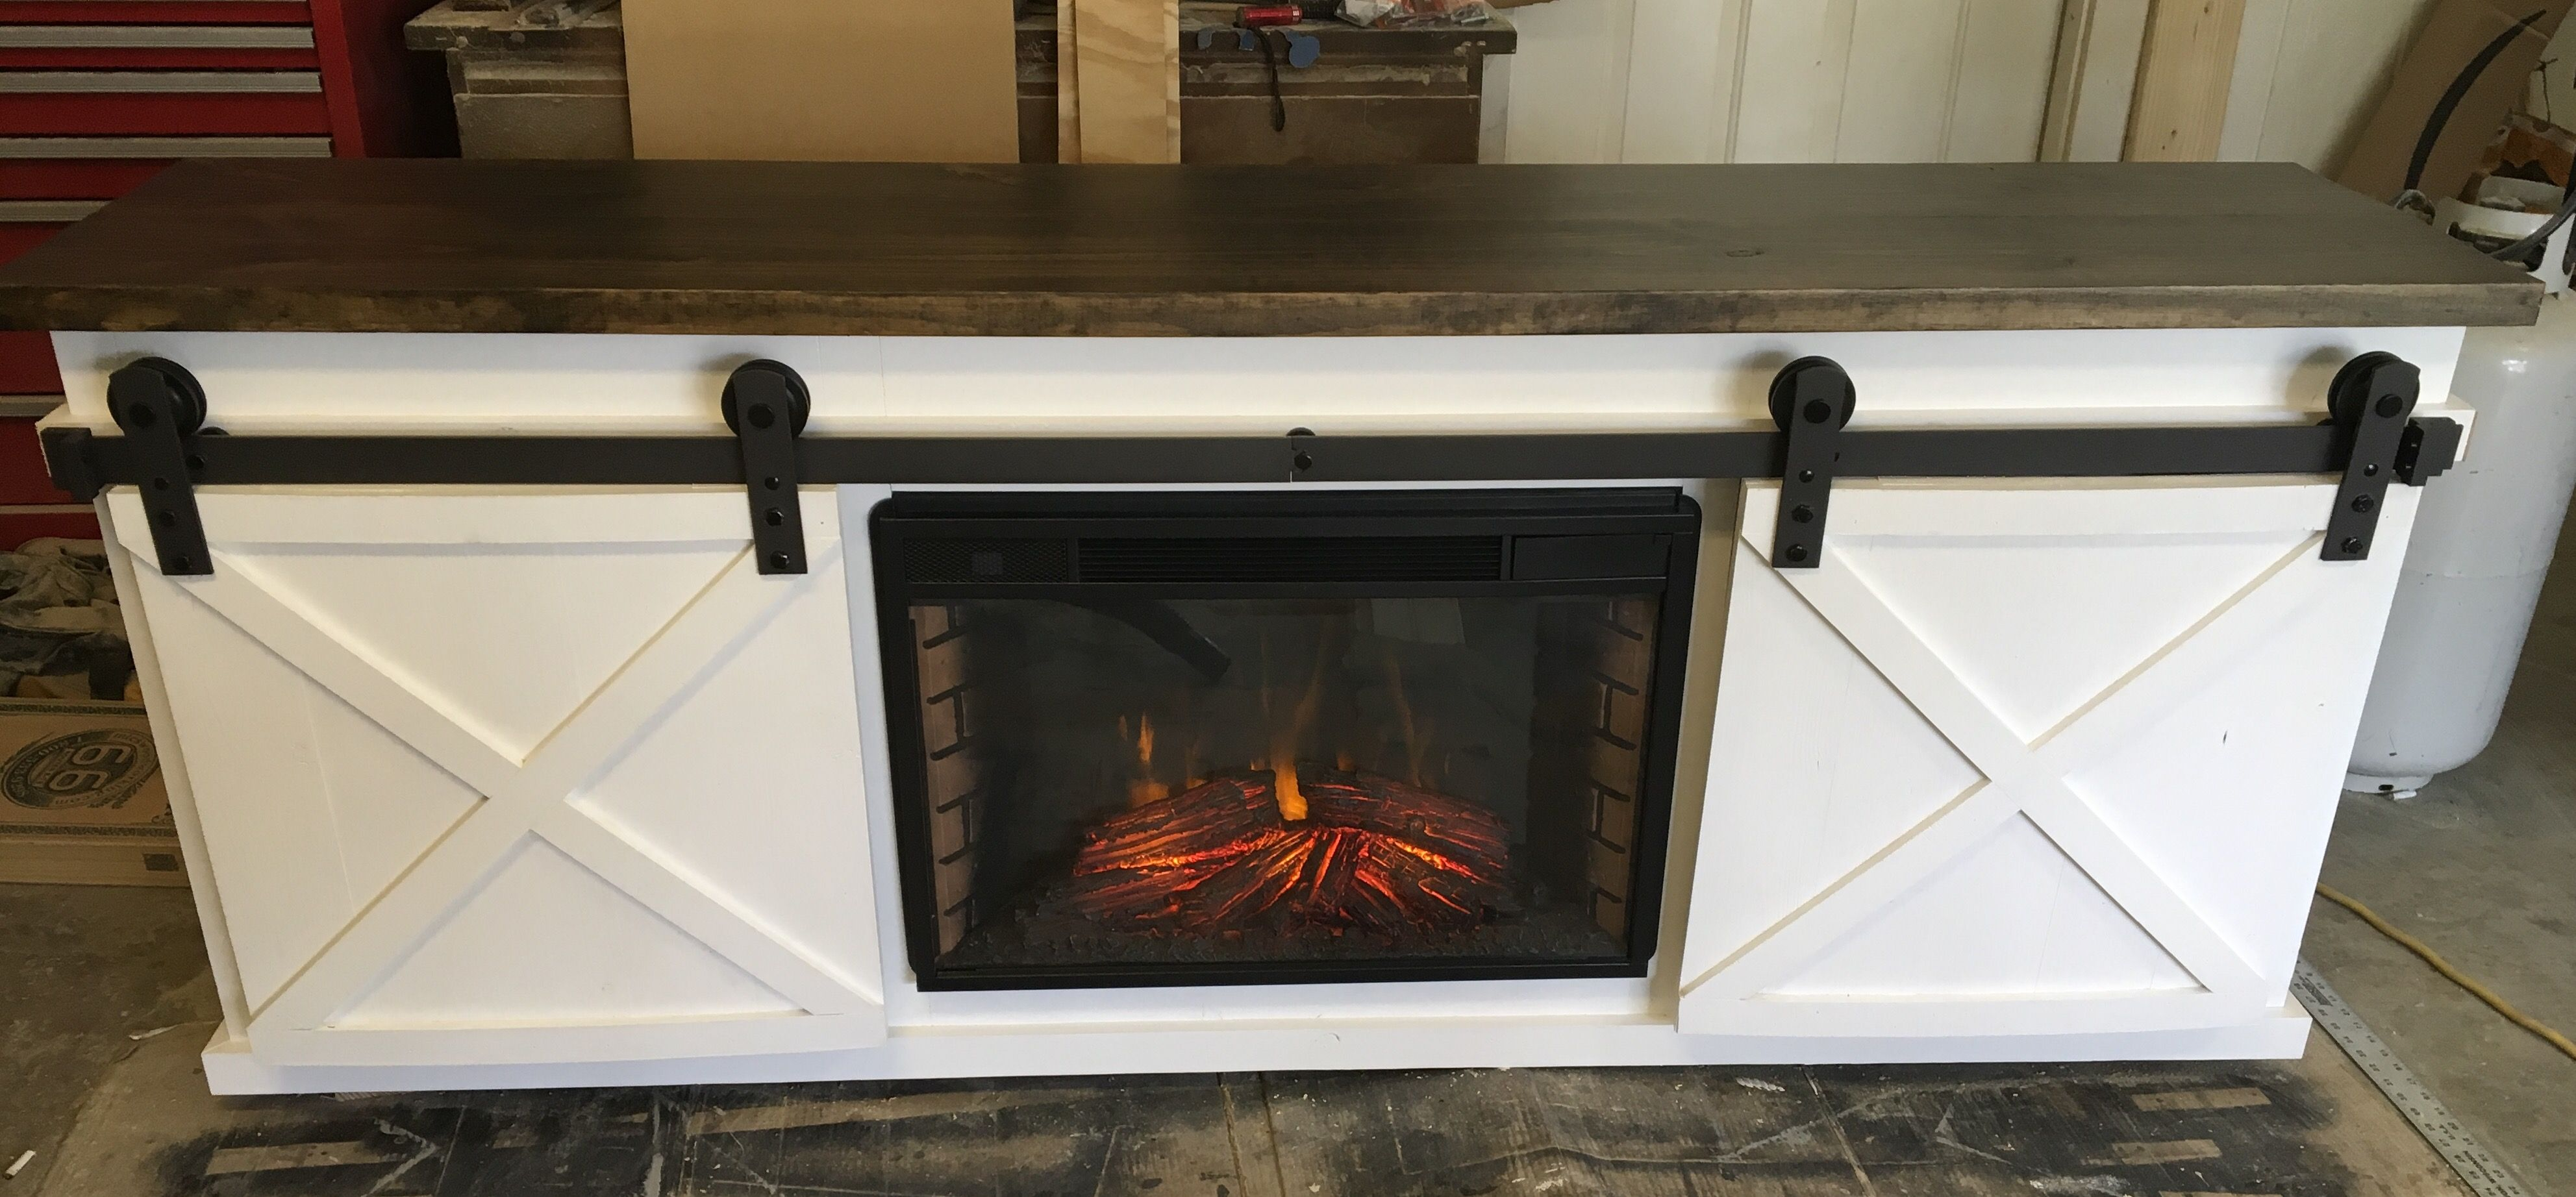 Tv Console With Fireplace Insert Diy Projects Diy Furniture Tv